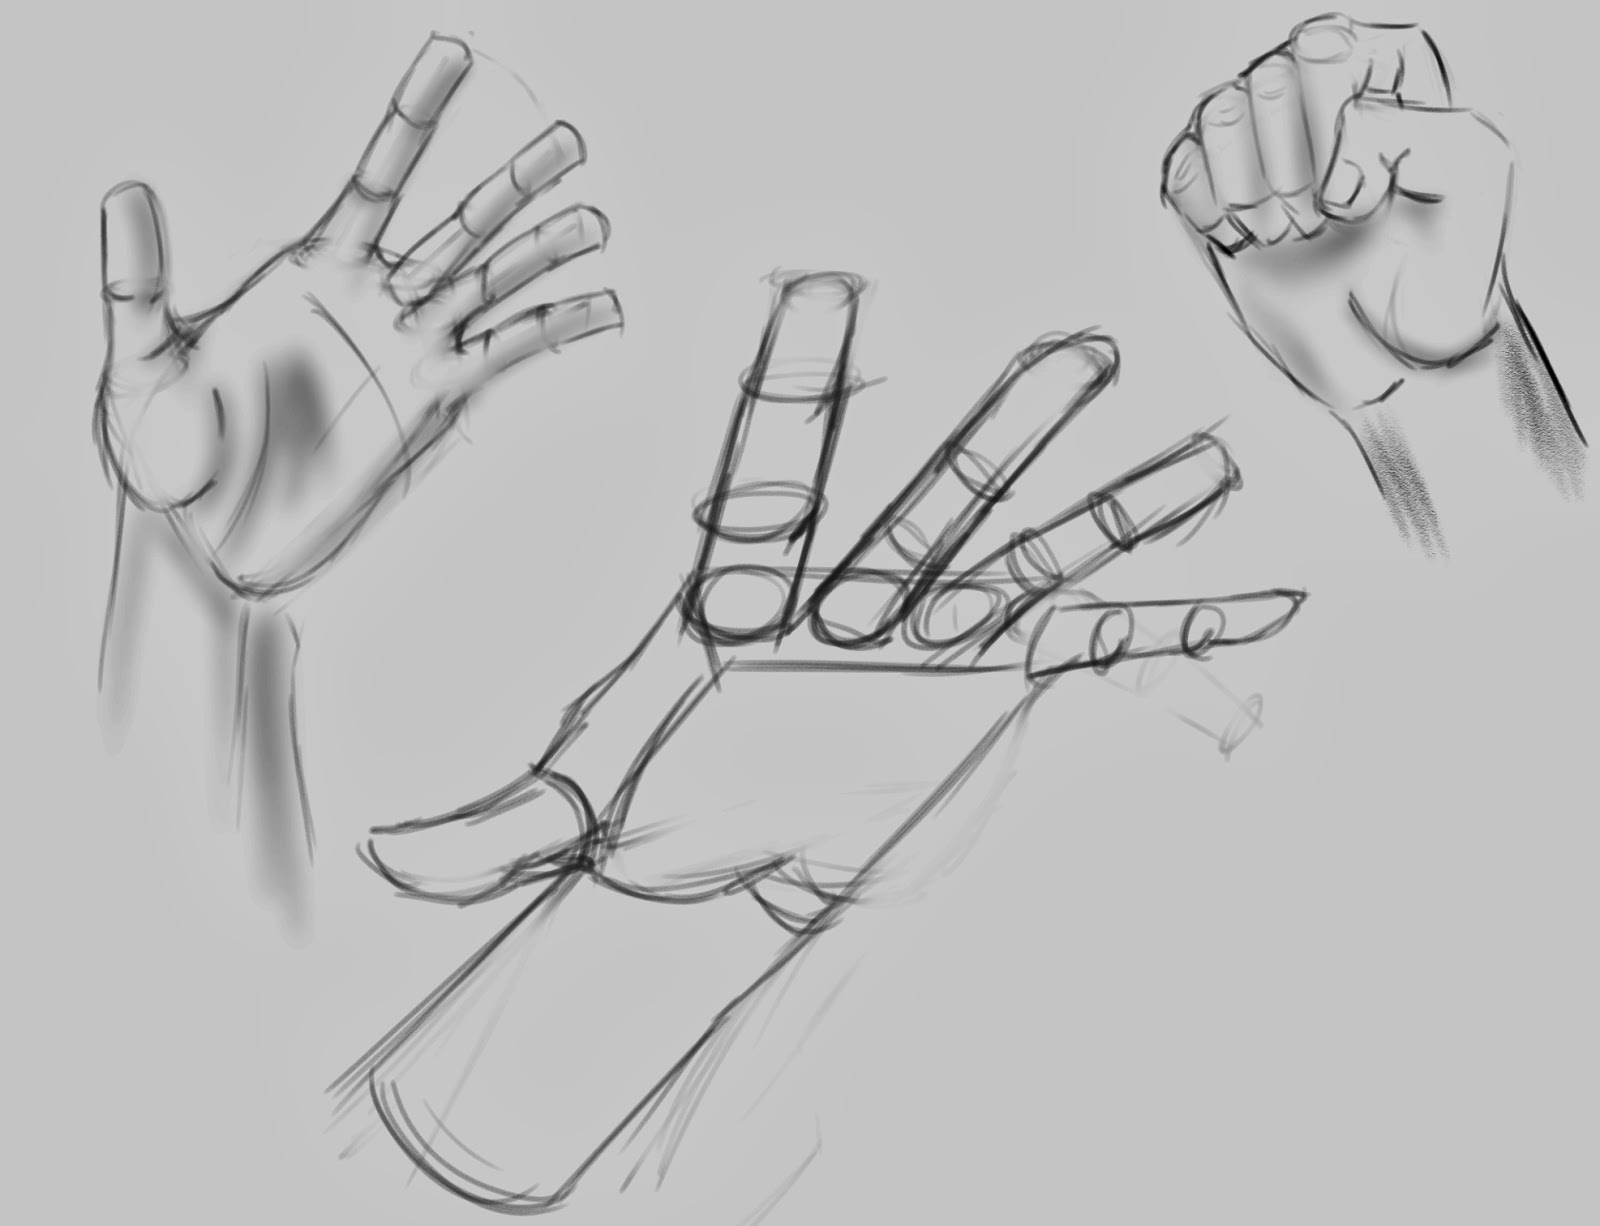 learning to figure draw and paint a few rough hand sketches